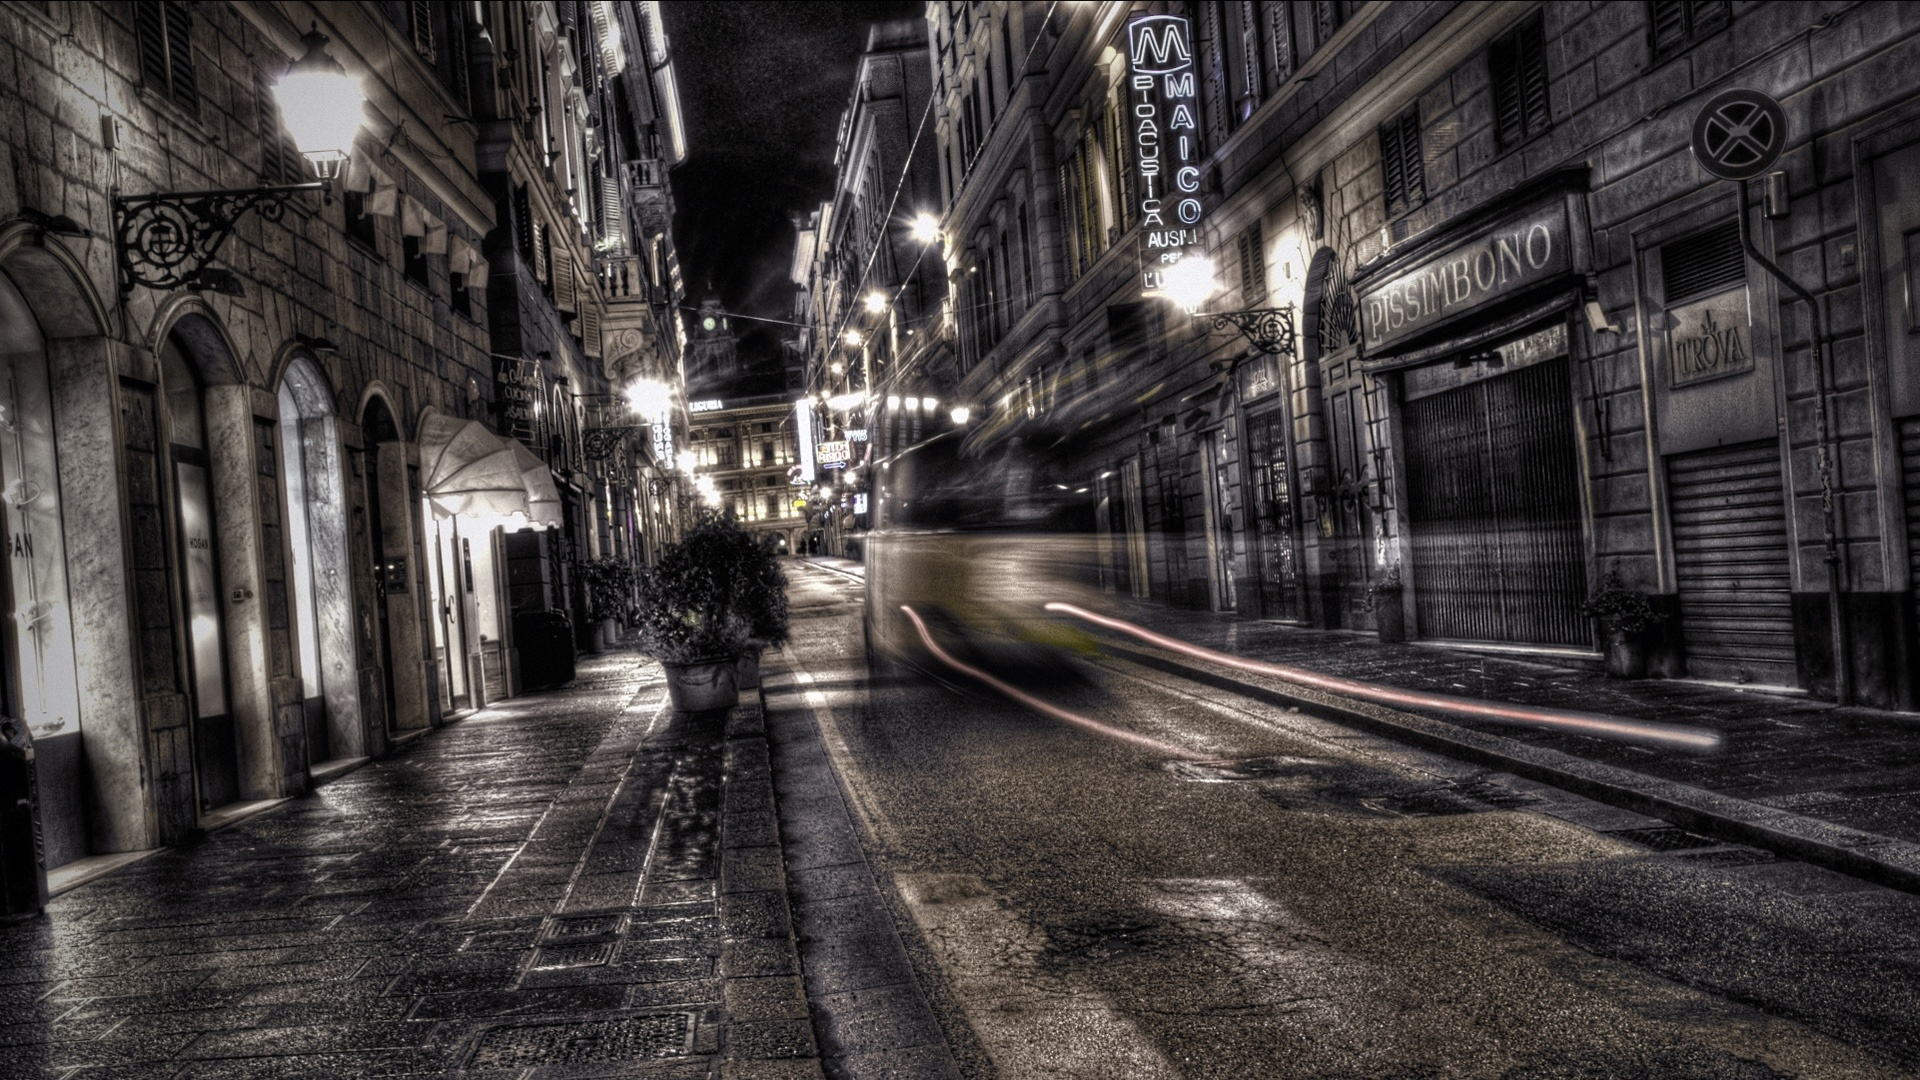 Get The Latest City Black White Road News Pictures And Videos Learn All About From Wallpapers4uorg Your Wallpaper